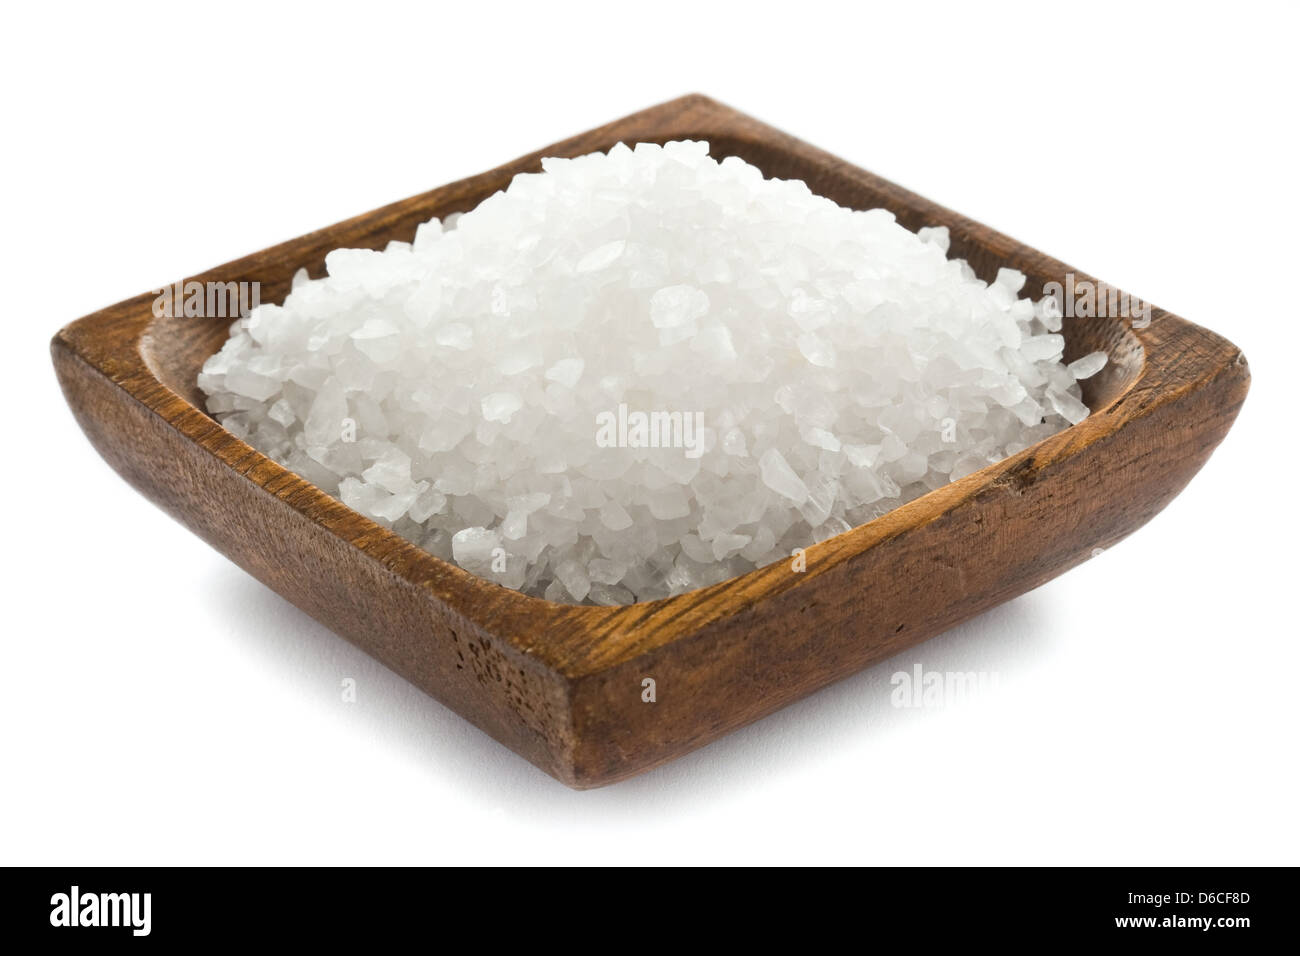 Healthy sea salt in wooden bowl closeup - Stock Image